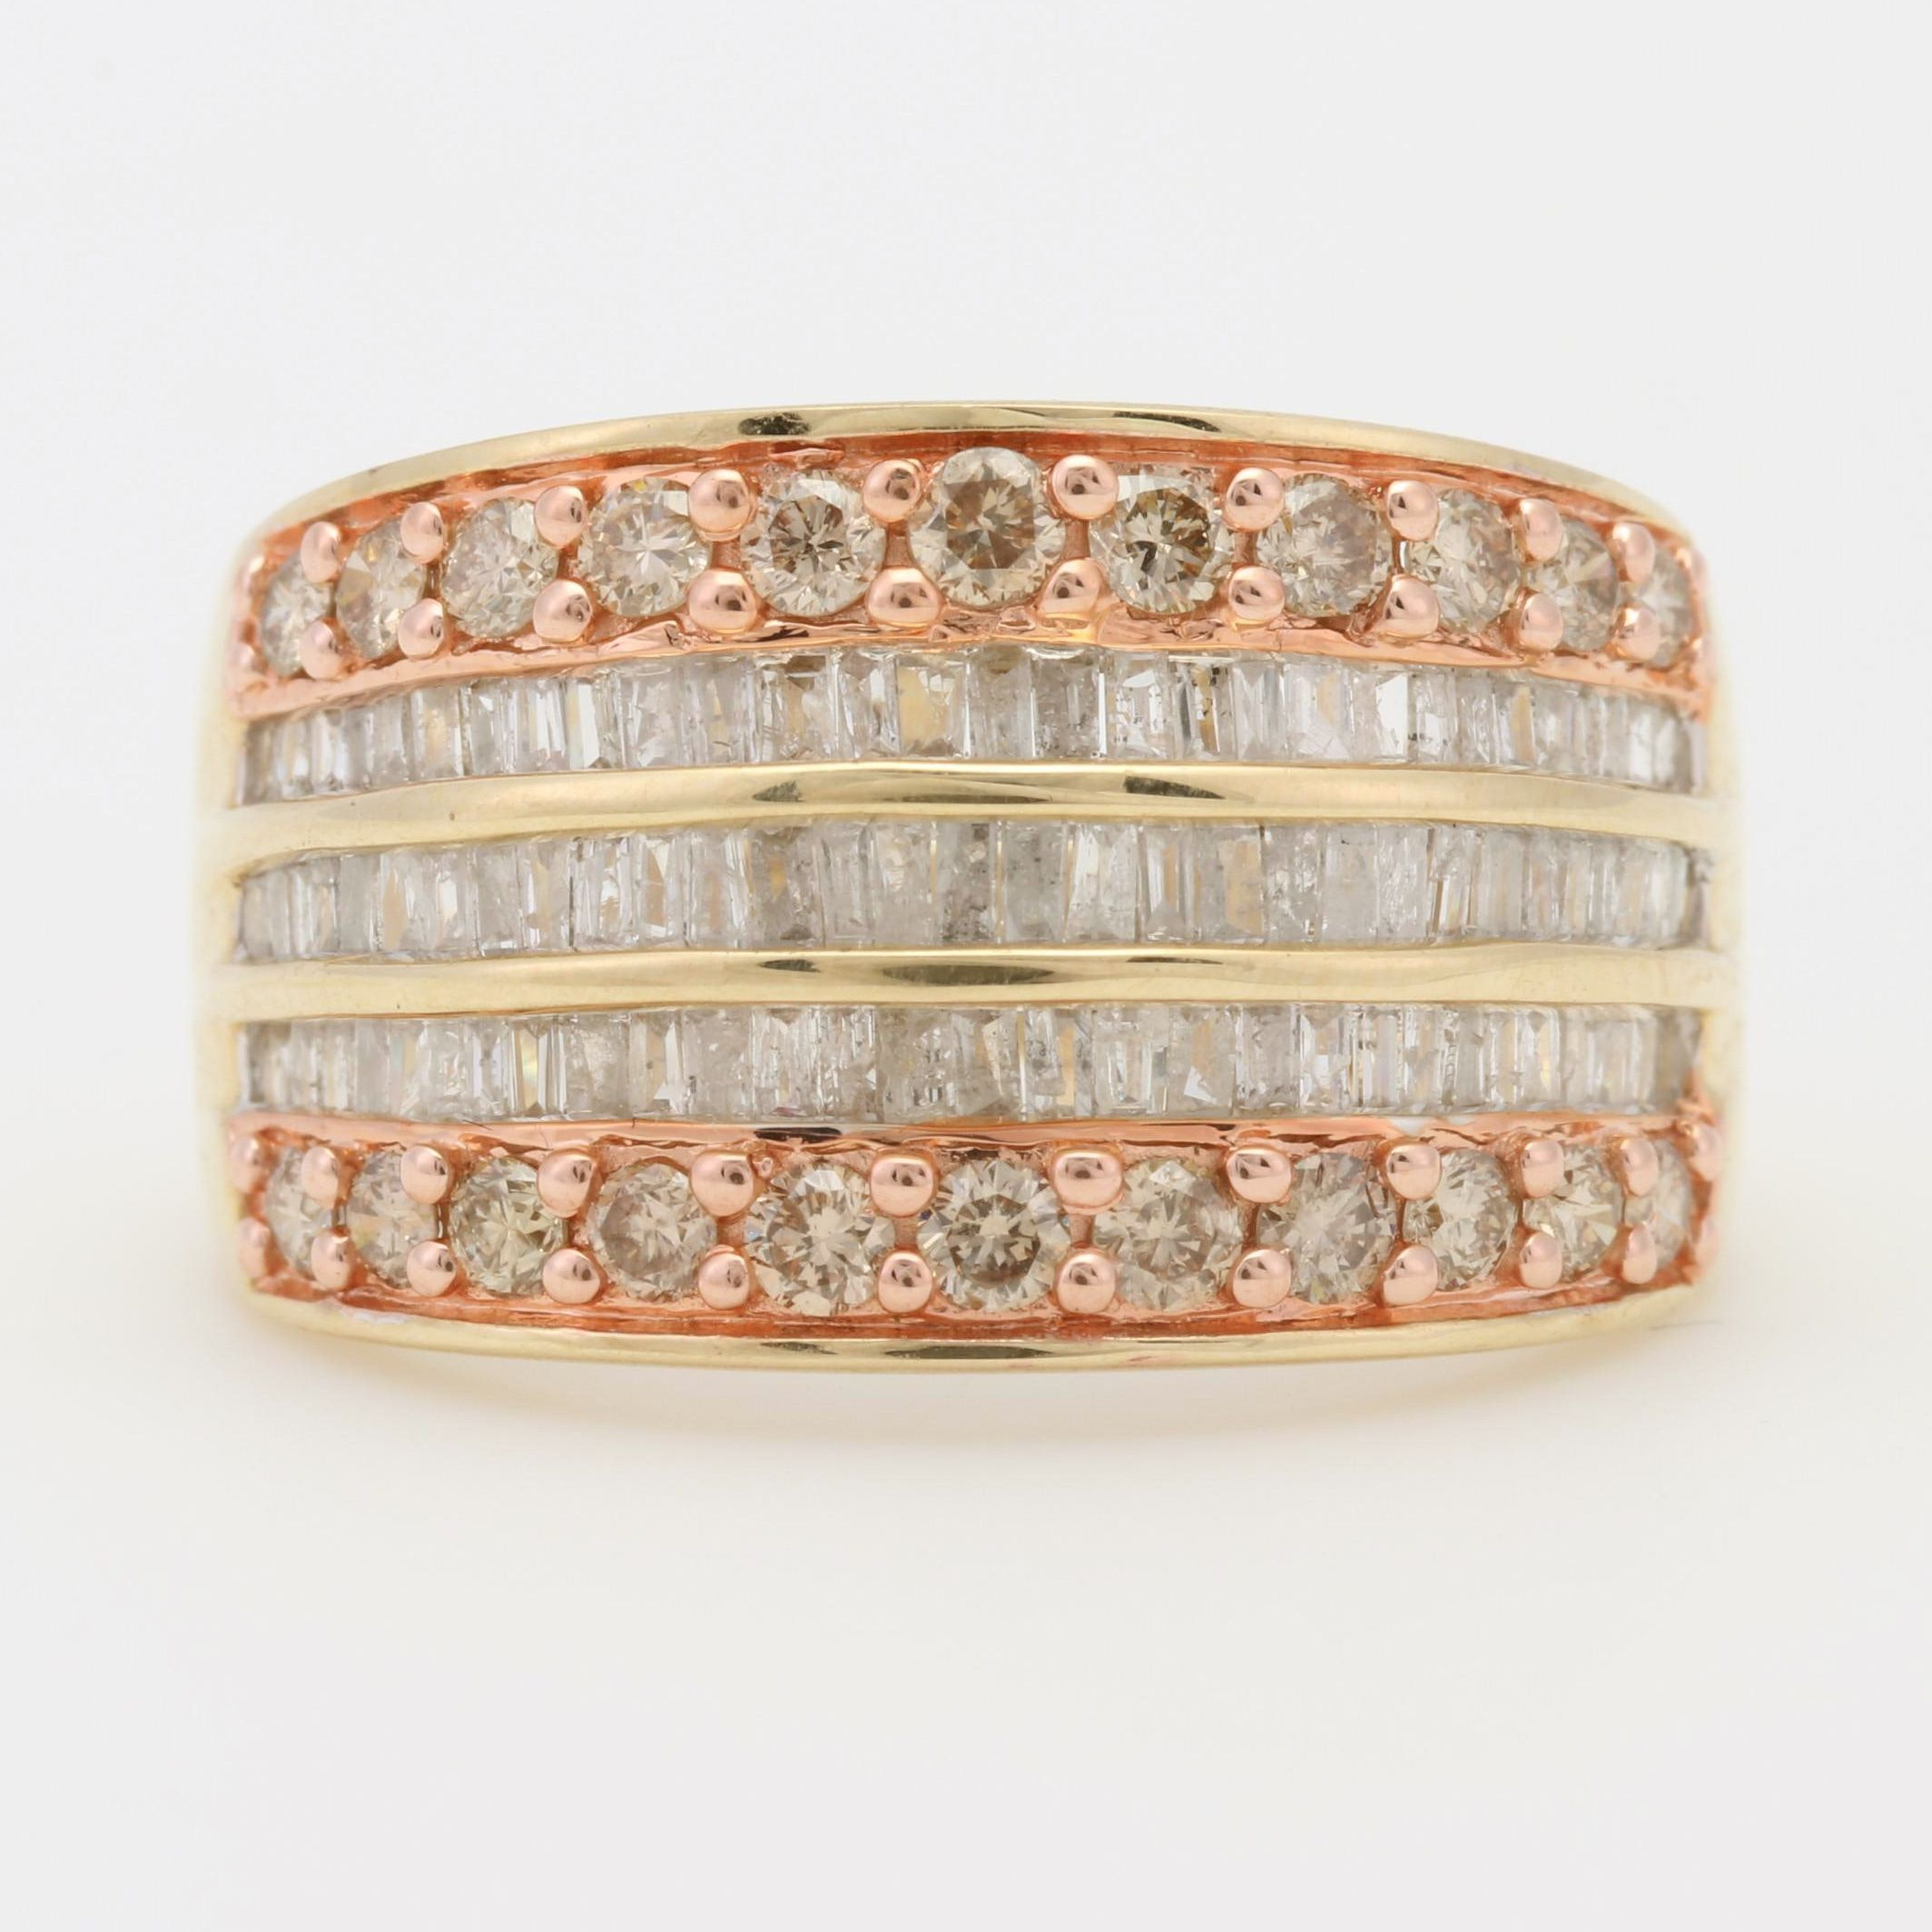 14K Yellow and Rose Gold Diamond Ring